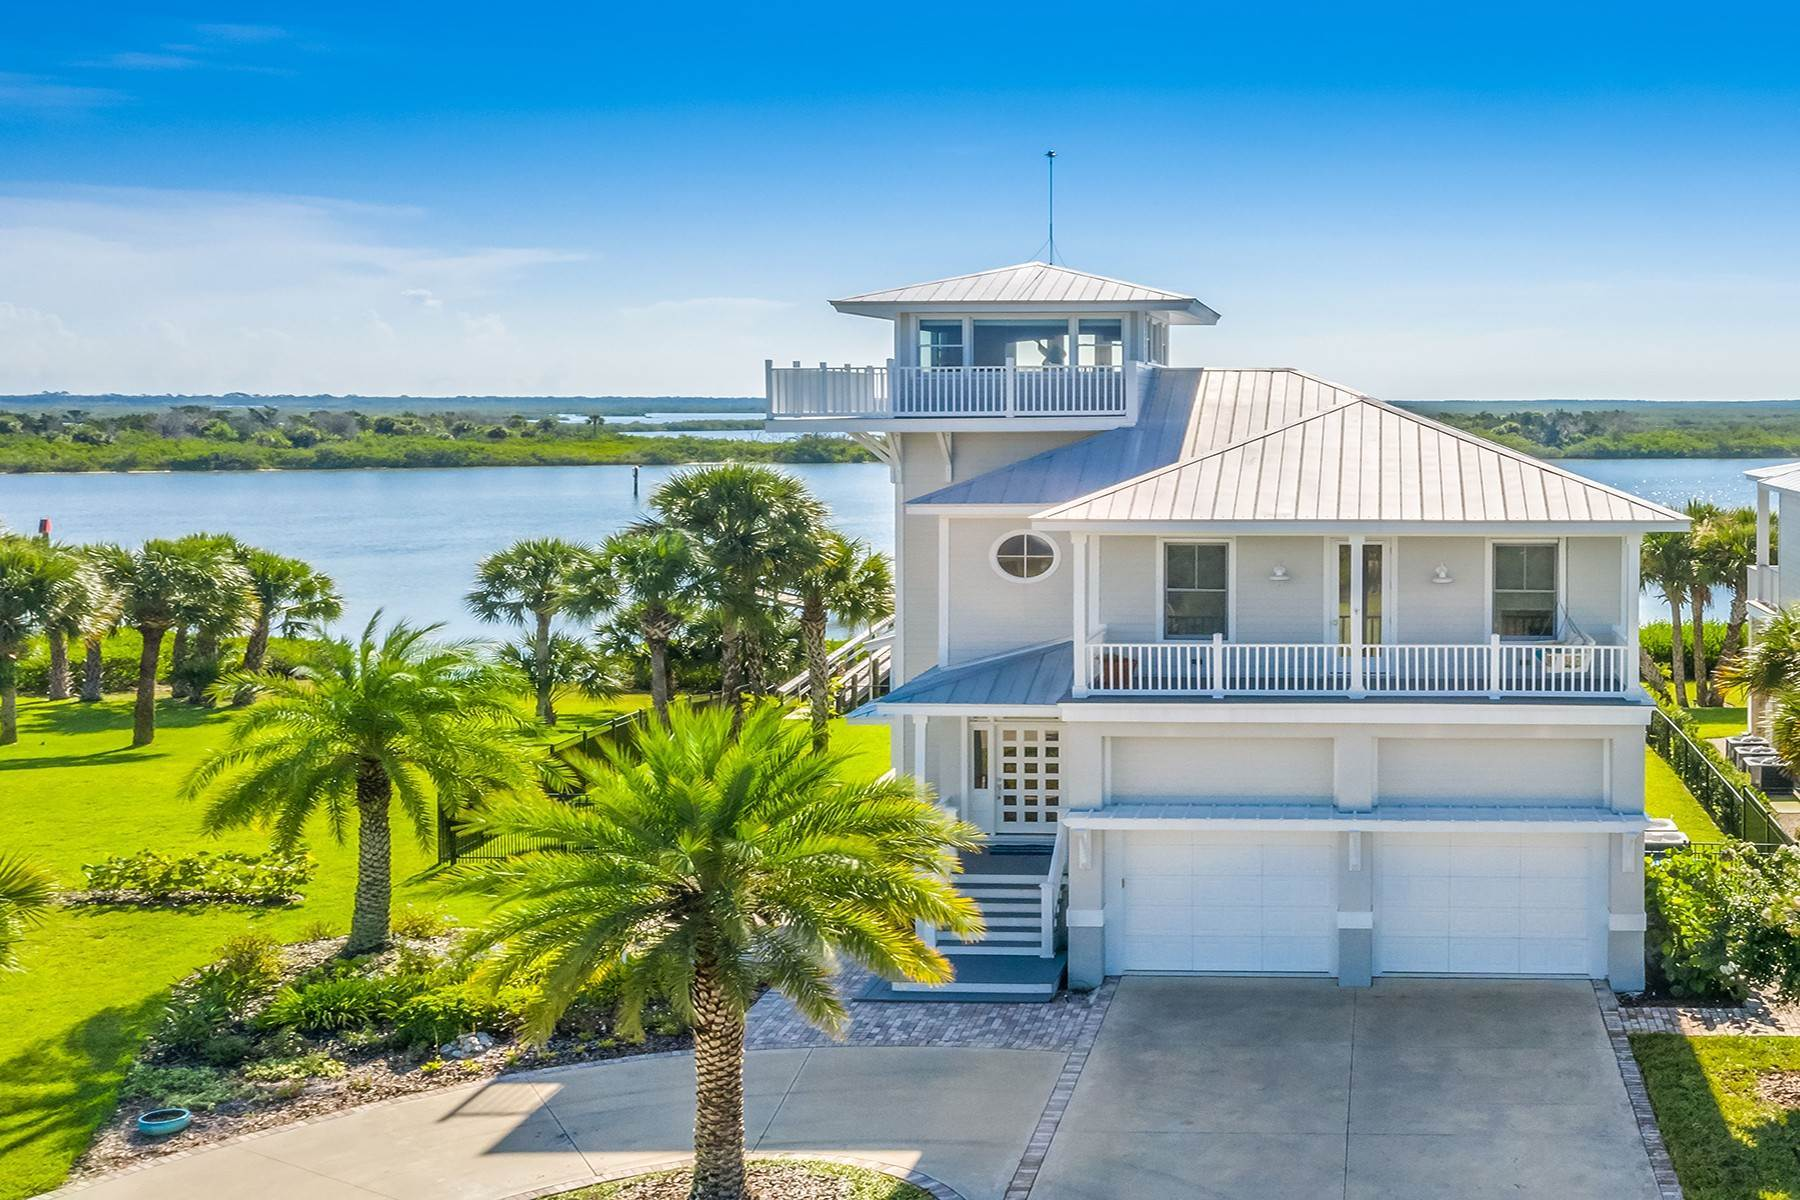 Single Family Homes for Sale at OAK HILL 615 Riverside Landing Dr Oak Hill, Florida 32759 United States